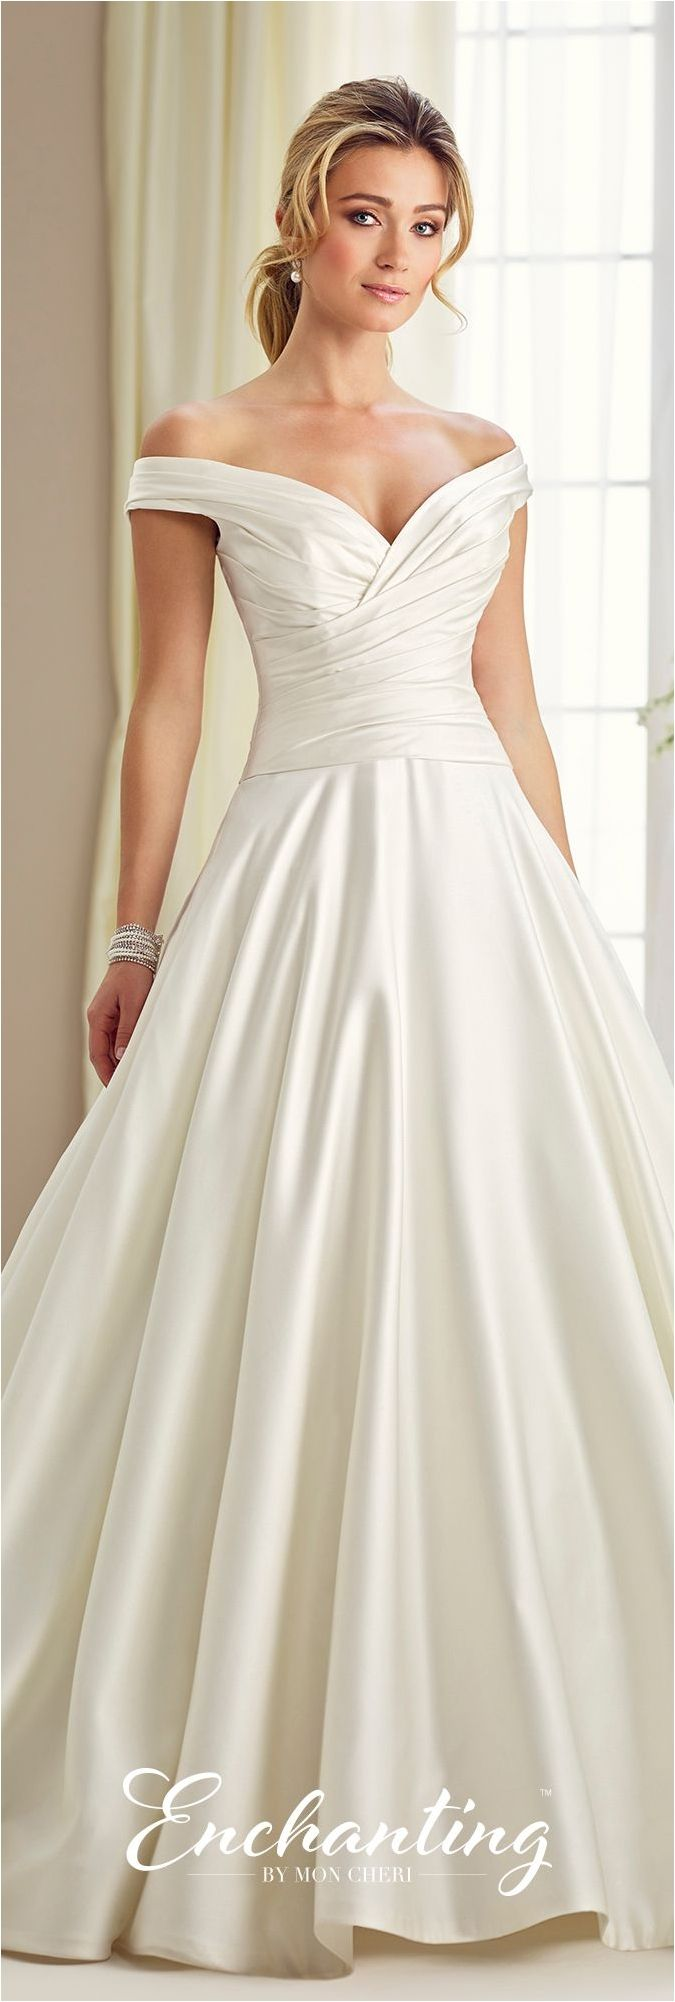 Wedding dresses find your ultimate custom made wedding dress from